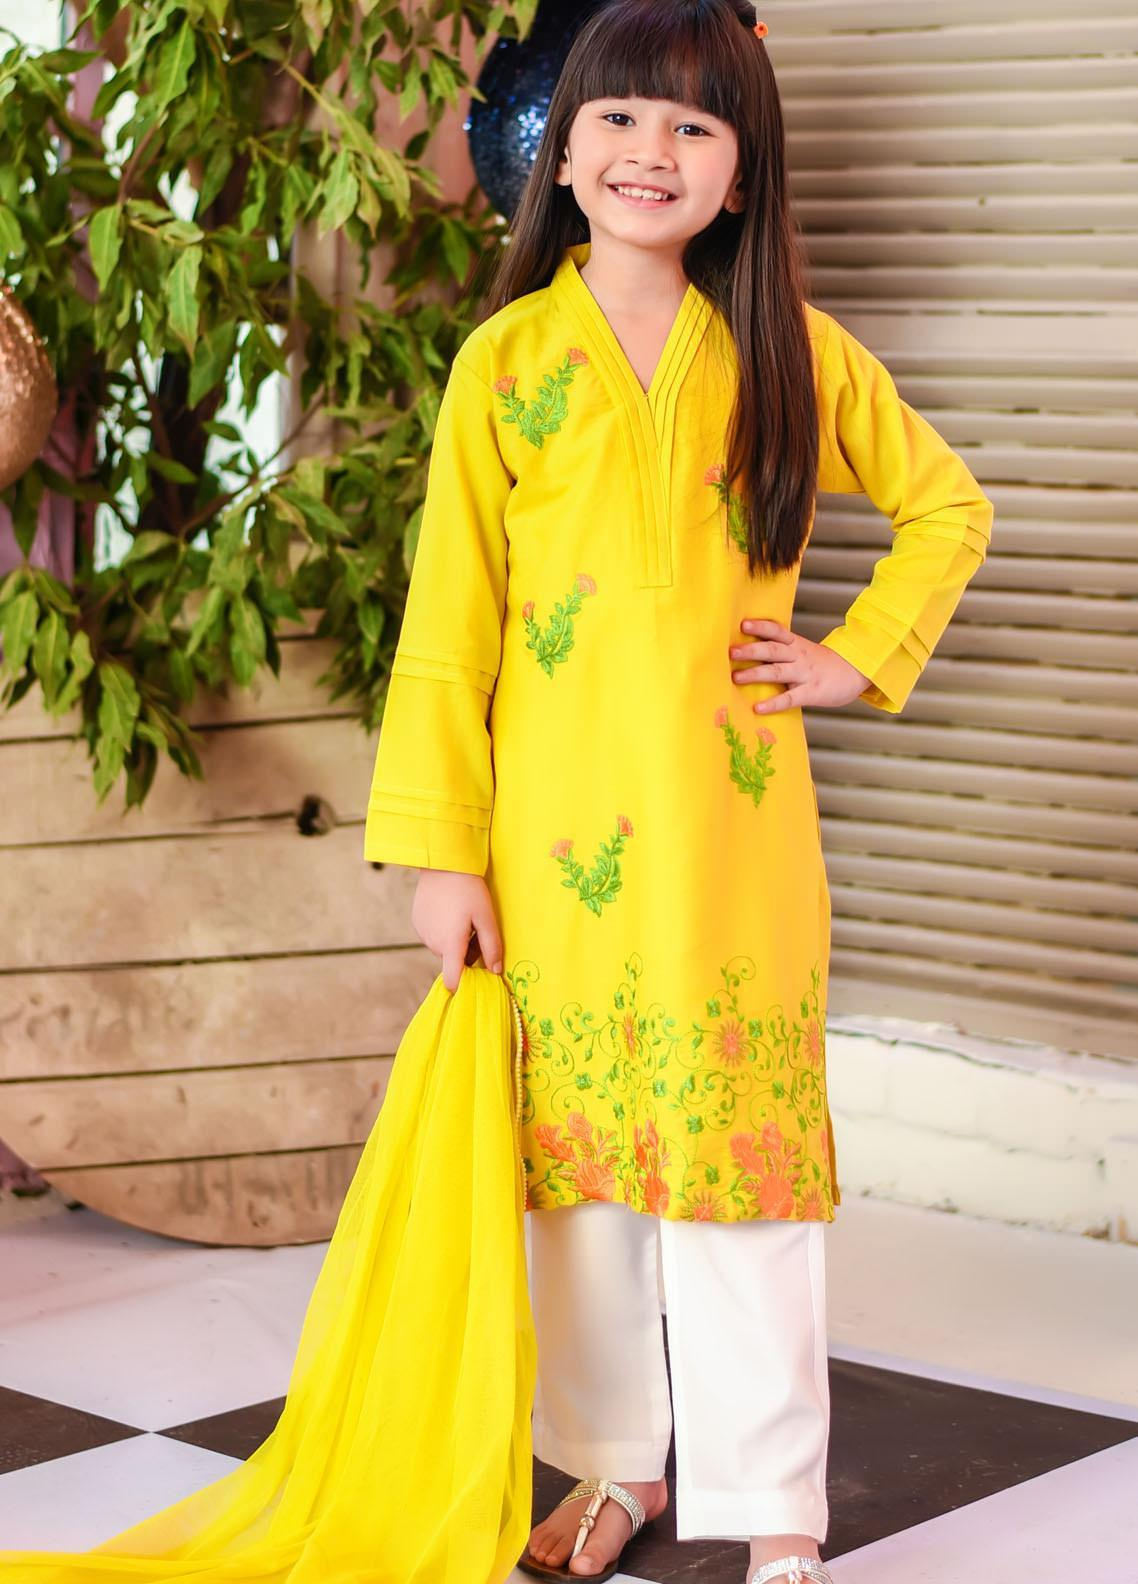 Ochre Cotton Fancy 3 Piece for Girls -  OFK-772 Lime Yellow